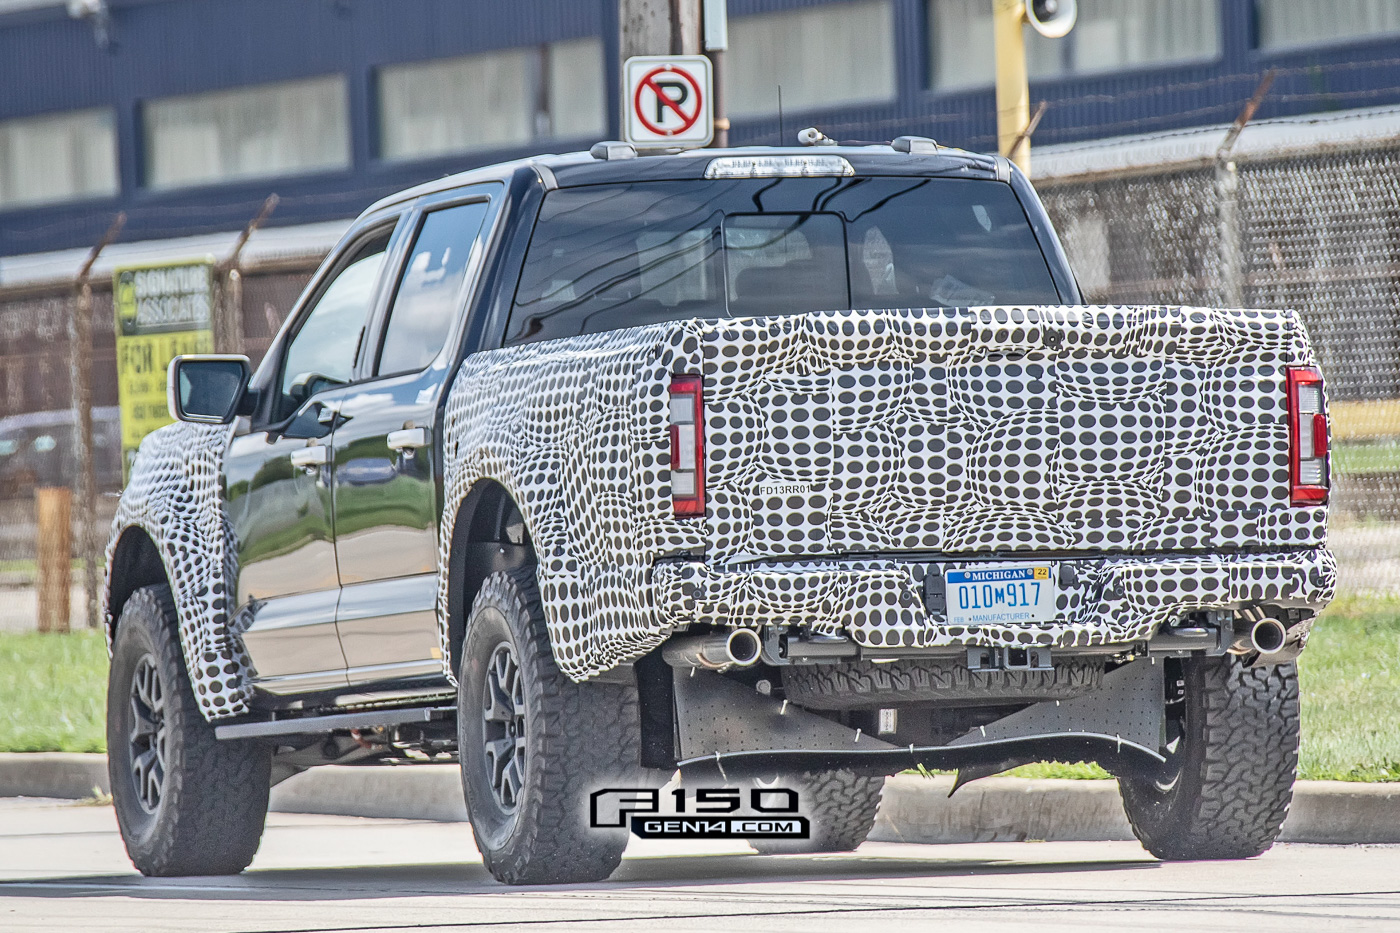 2021-F-150-Raptor-Prototype-Suspension-Spied-23.jpg